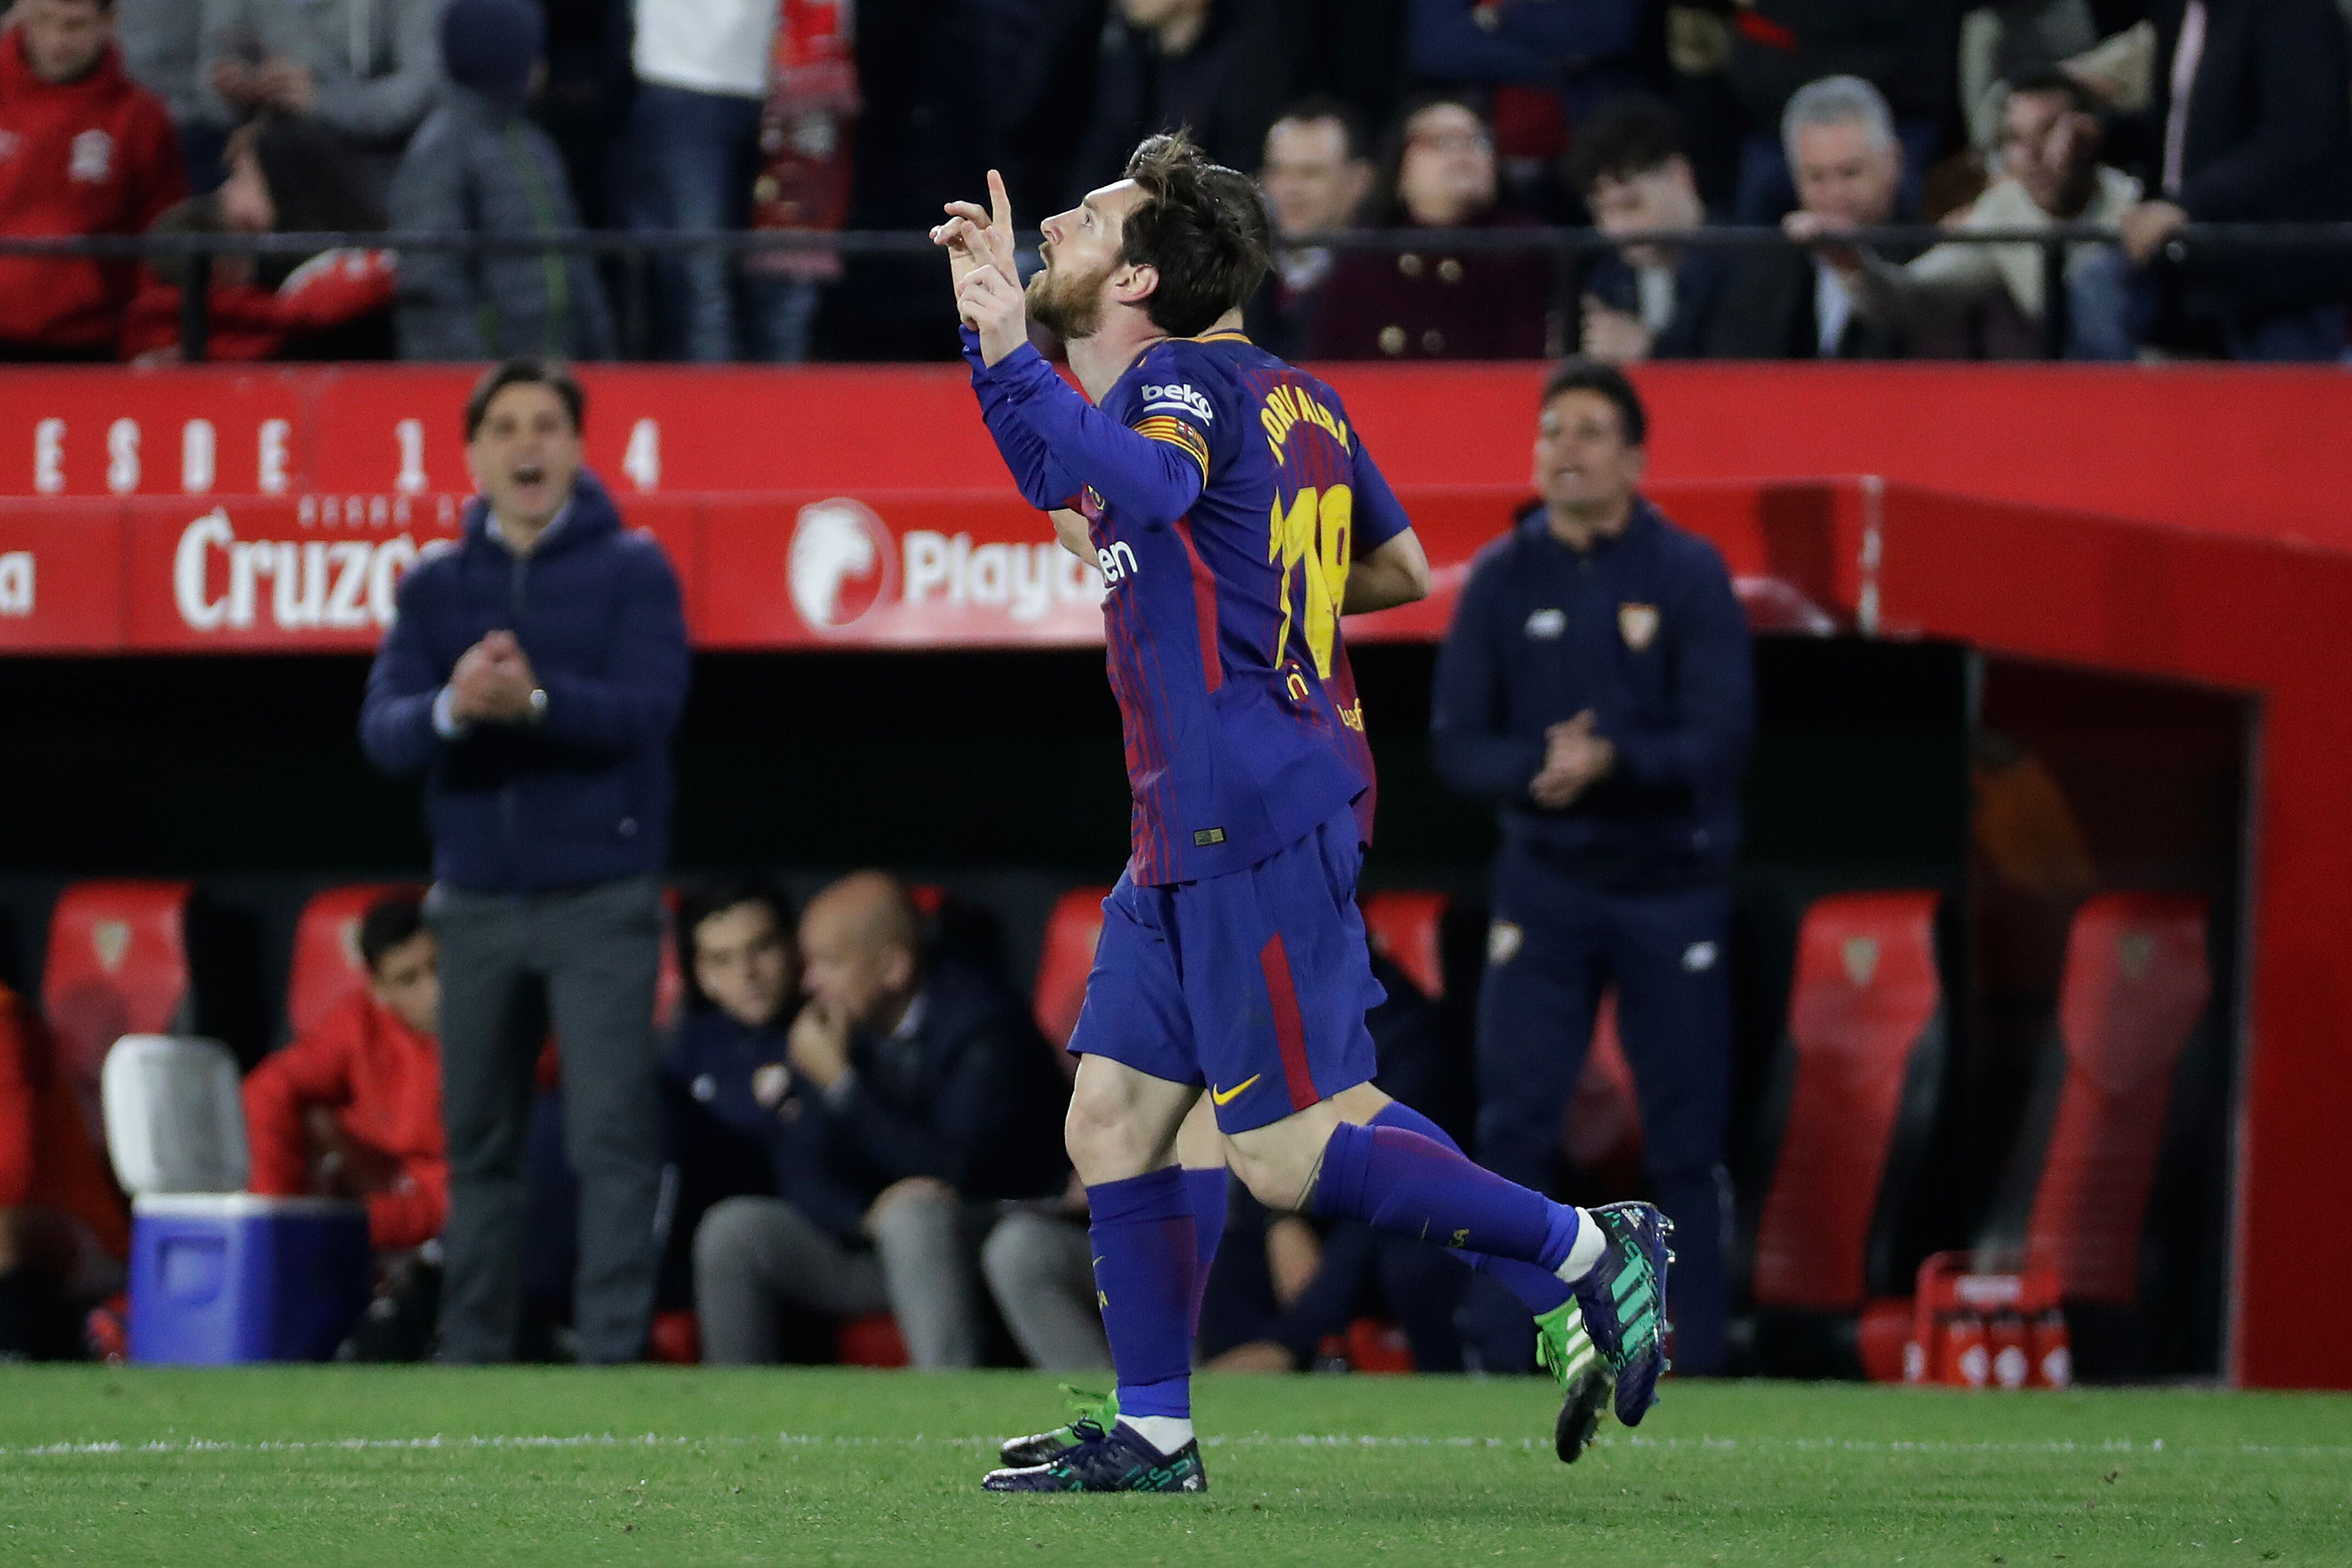 SEVILLA, SPAIN - MARCH 31: Lionel Messi of FC Barcelona celebrates 2-2 during the La Liga Santander match between Sevilla v FC Barcelona at the Estadio Ramon Sanchez Pizjuan on March 31, 2018 in Sevilla Spain (Photo by David S. Bustamante/Soccrates/Getty Images)